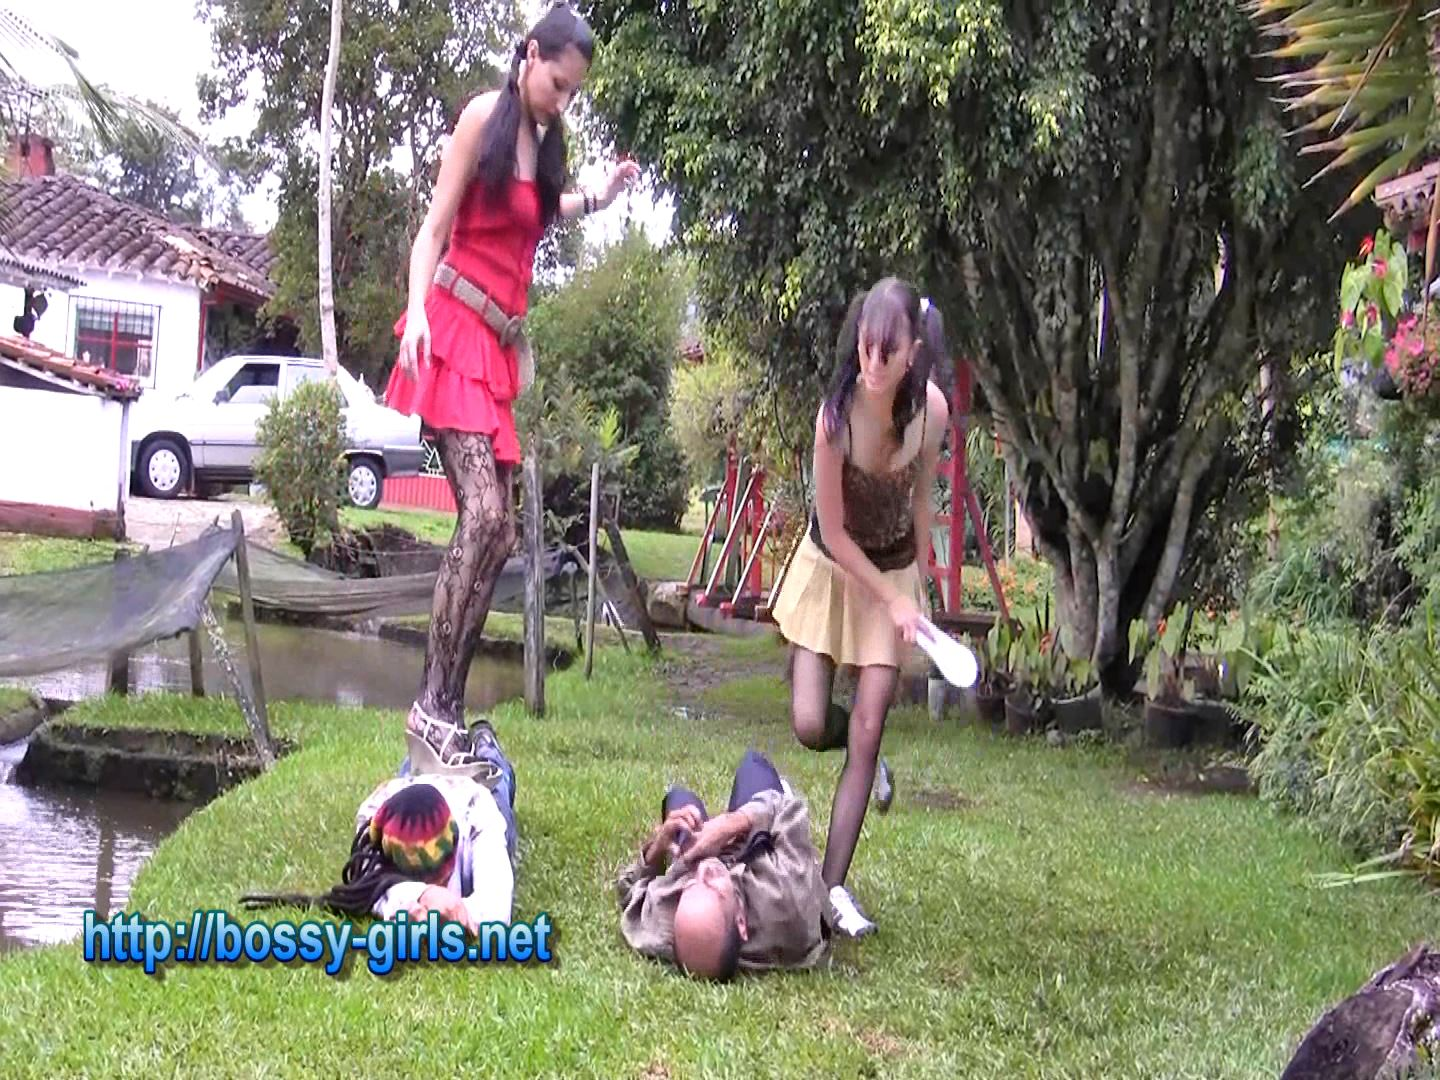 MS. KASR, MS. Leila In Scene: EXTROVERT STUDENTS 06 Trampling of the Morons - BOSSY GIRLS - FULL HD/1080p/WMV